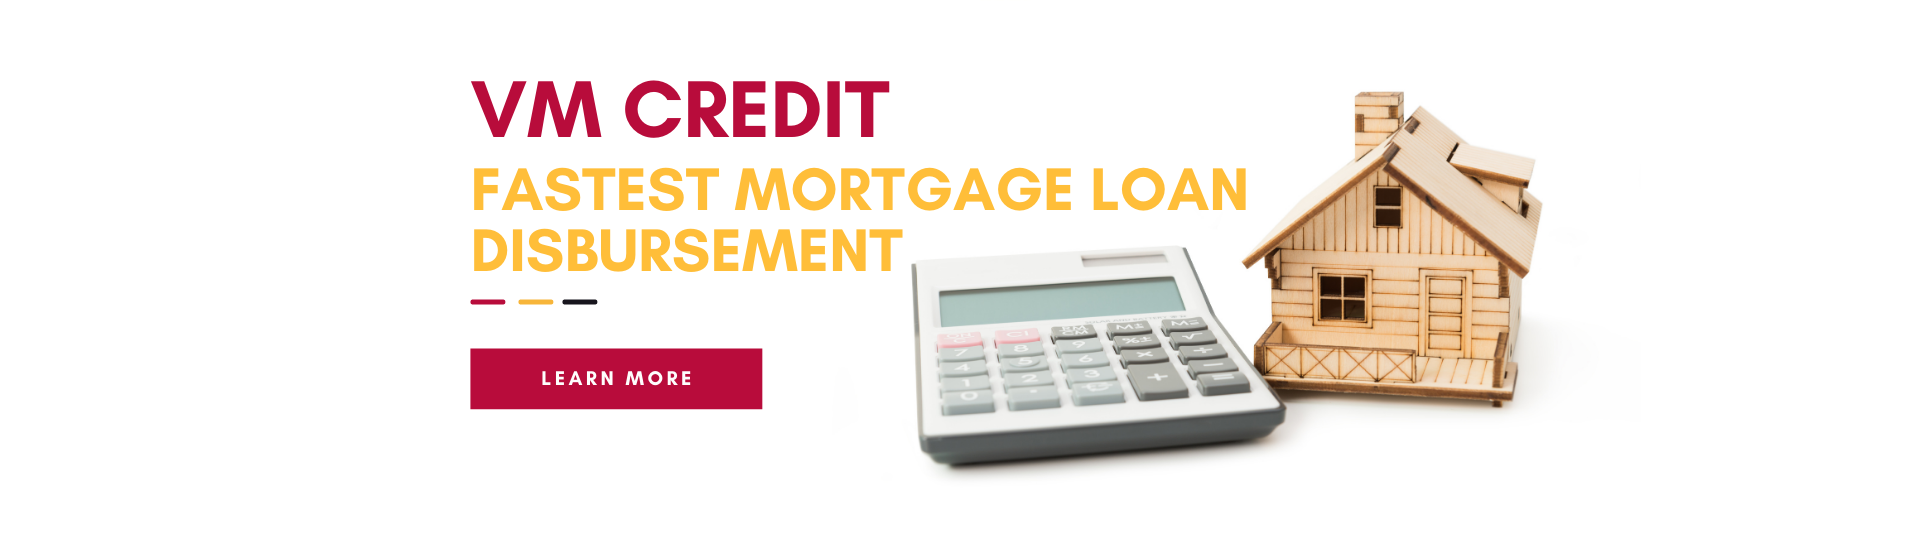 vm credit mortgage loans